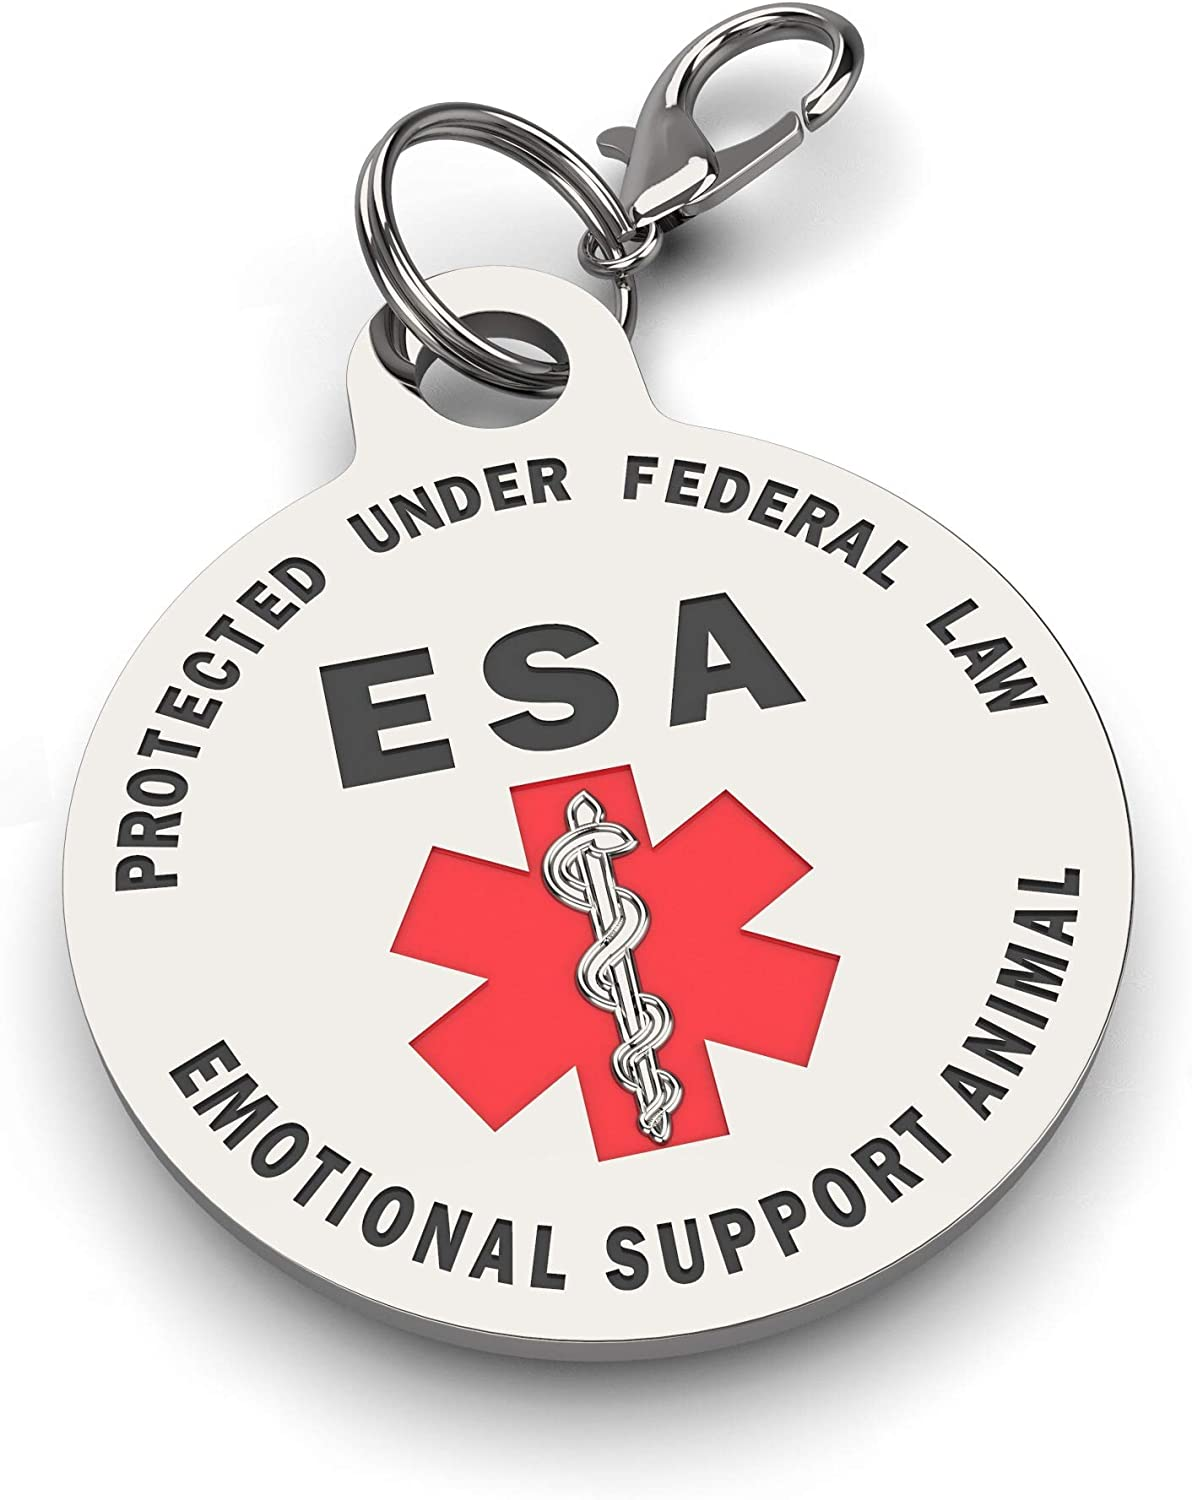 Double Sided Small Breed Emotional Support Animal ESA Tag Red Medical Alert Symbol and Protected by Federal Law .999 inch ID Tag Easily Switch Between Collars Harness and Vest.